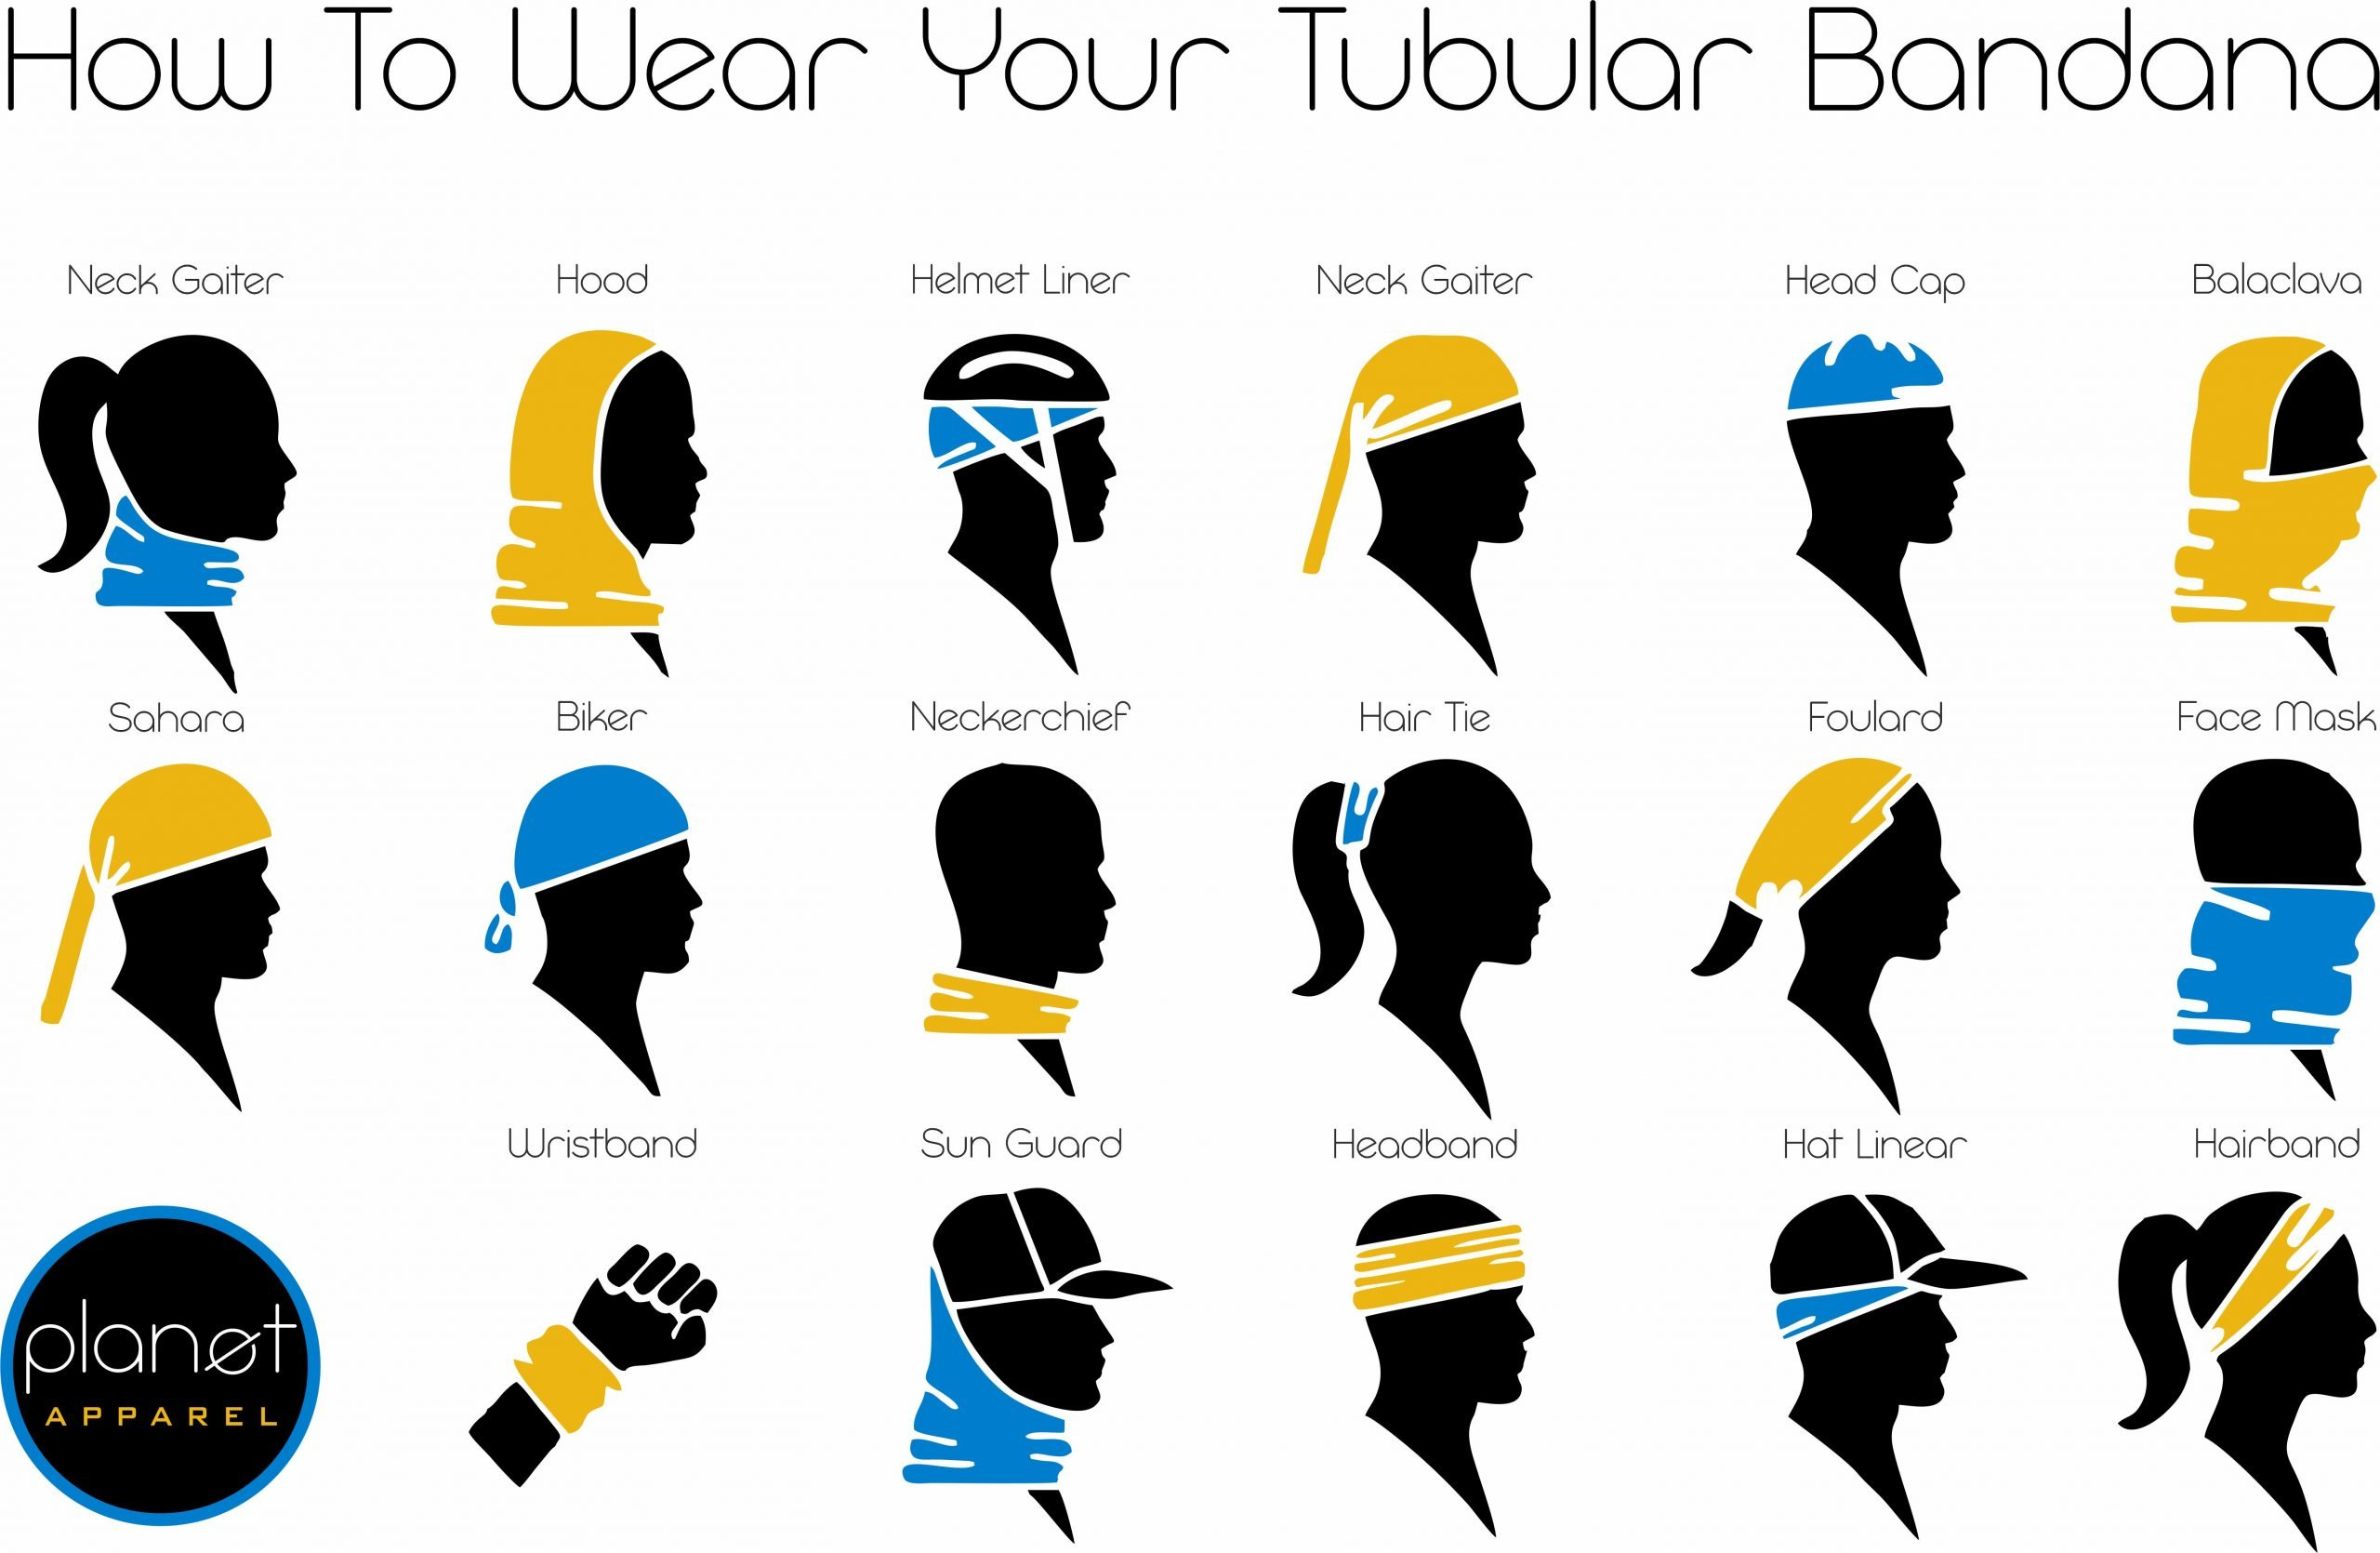 Image d displaying how to wear our tubular bandanas